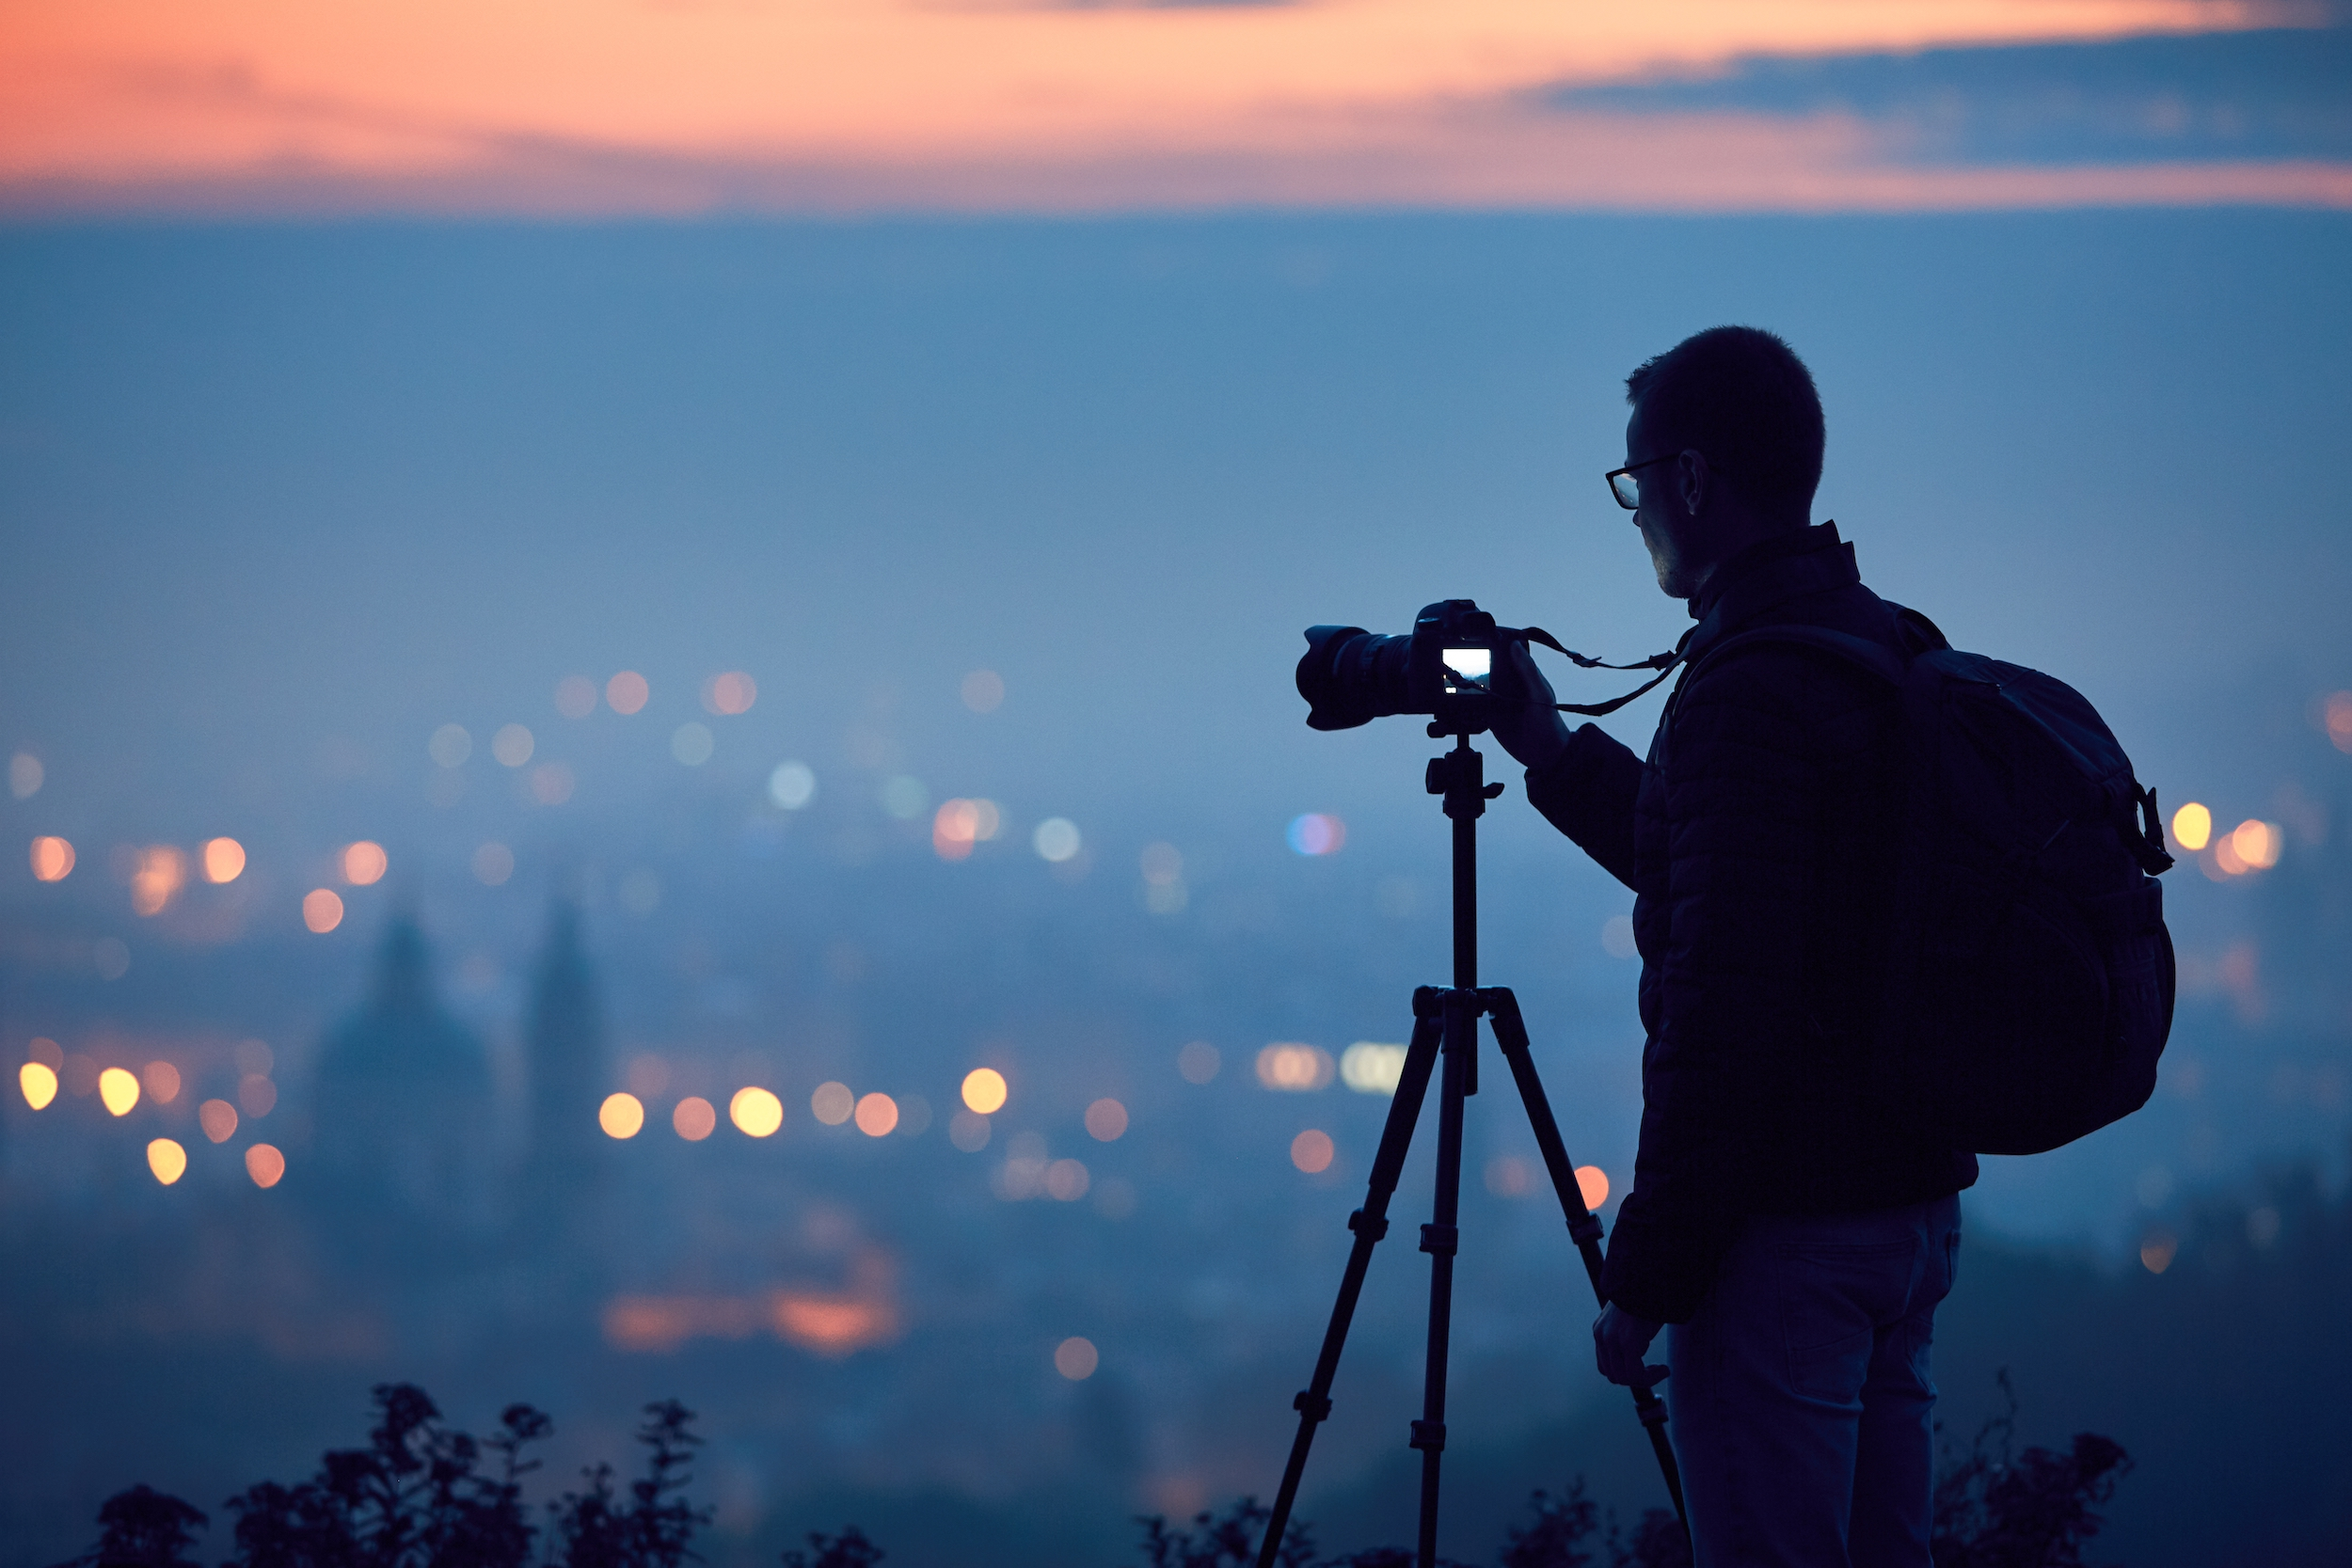 Silhouette of the photographer with tripod.